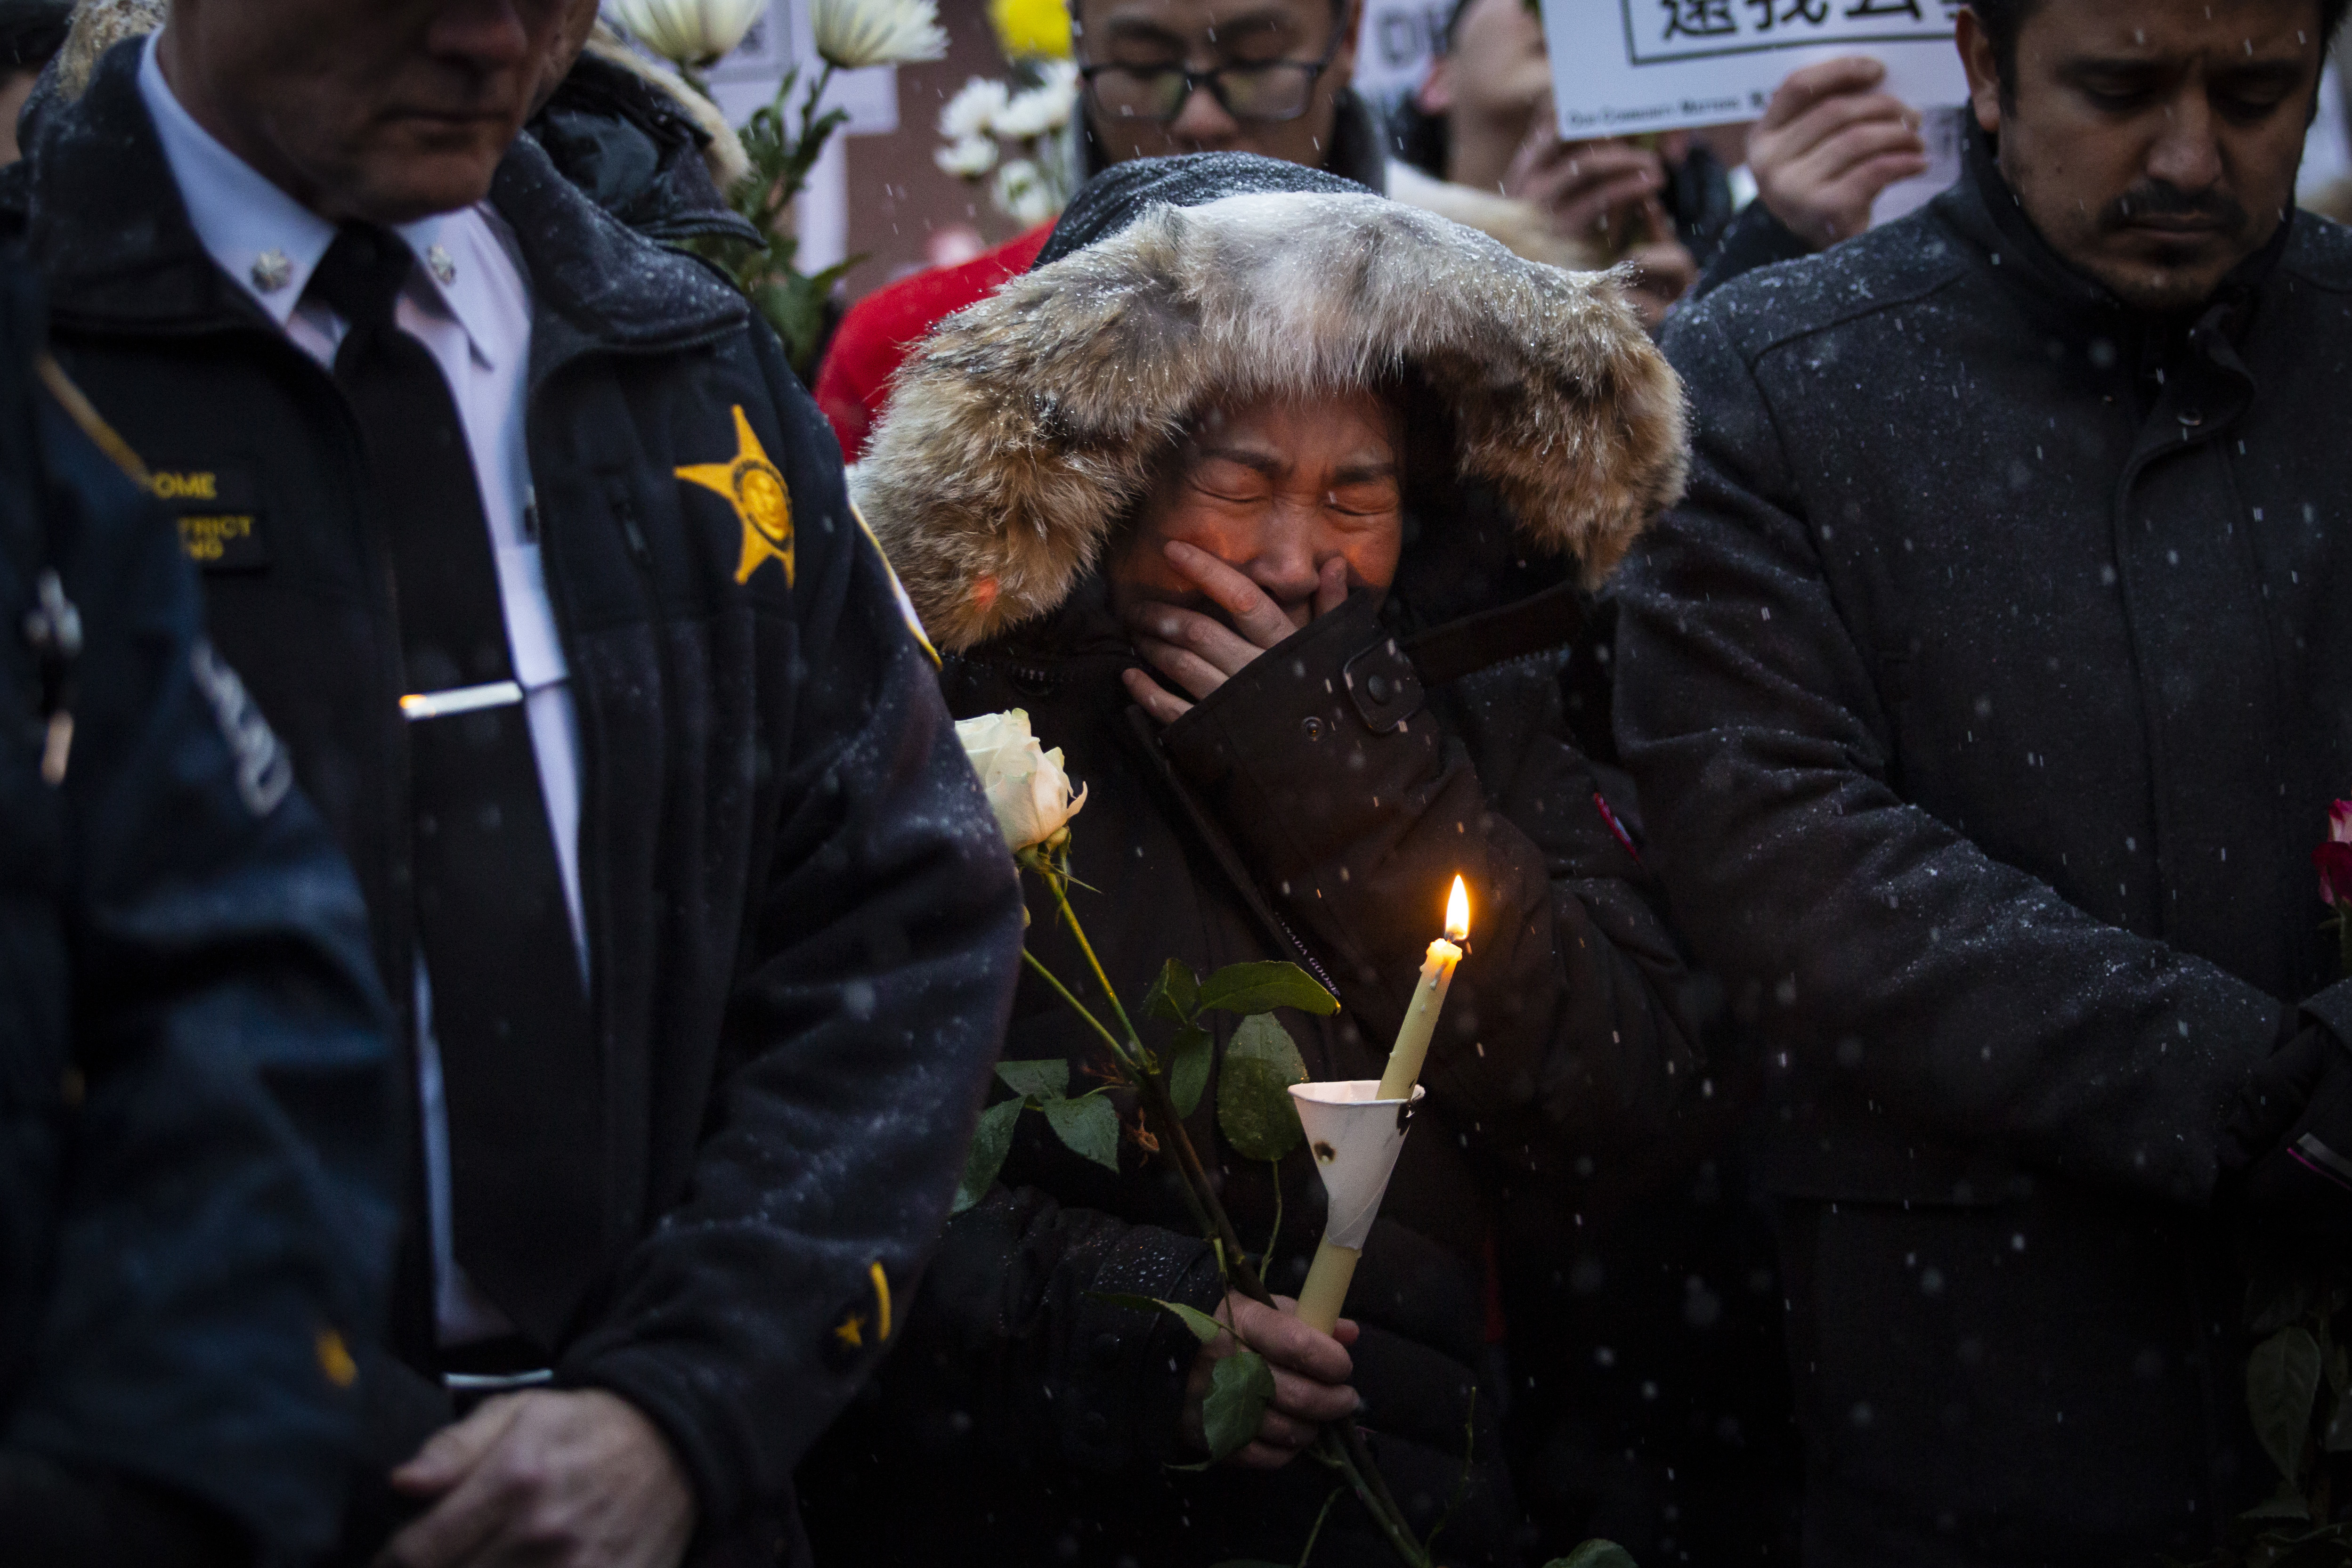 A woman cries as hundreds of mourners gather for a vigil Wednesday, Feb. 12, 2020, in a parking lot in the 2000 block of South Wells in Chinatown, where Huayi Bian and Weizhong Xiong were shot to death last weekend. Bian and Xiong were killed during an apparent robbery, for which a suspect  faces two counts of first-degree murder.